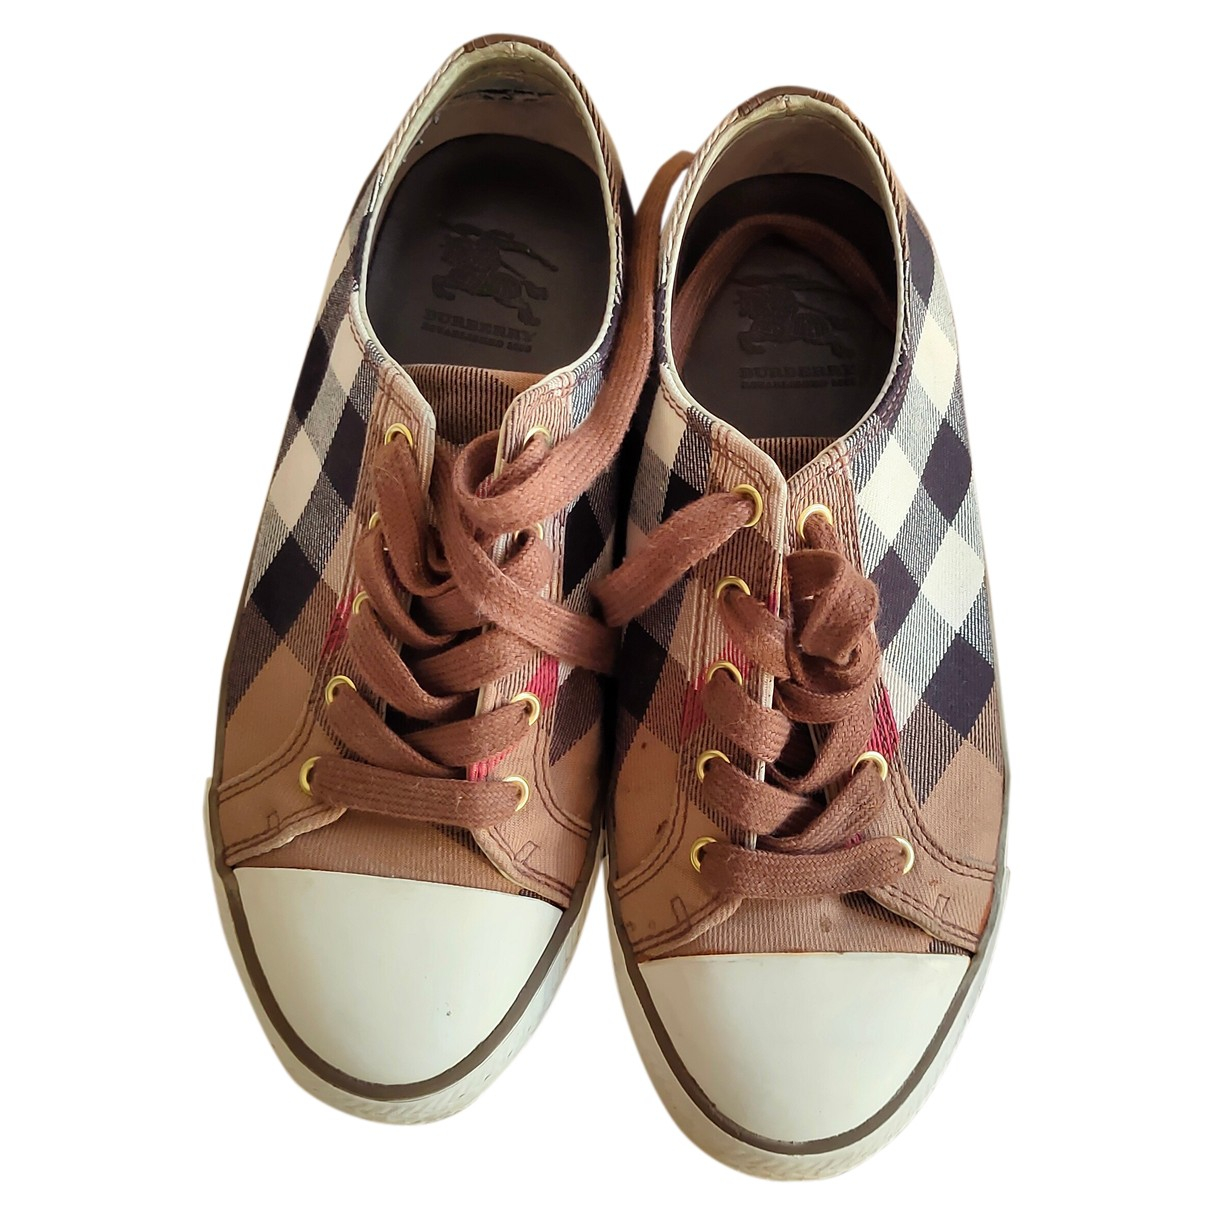 Burberry N Cloth Trainers for Women 37 EU